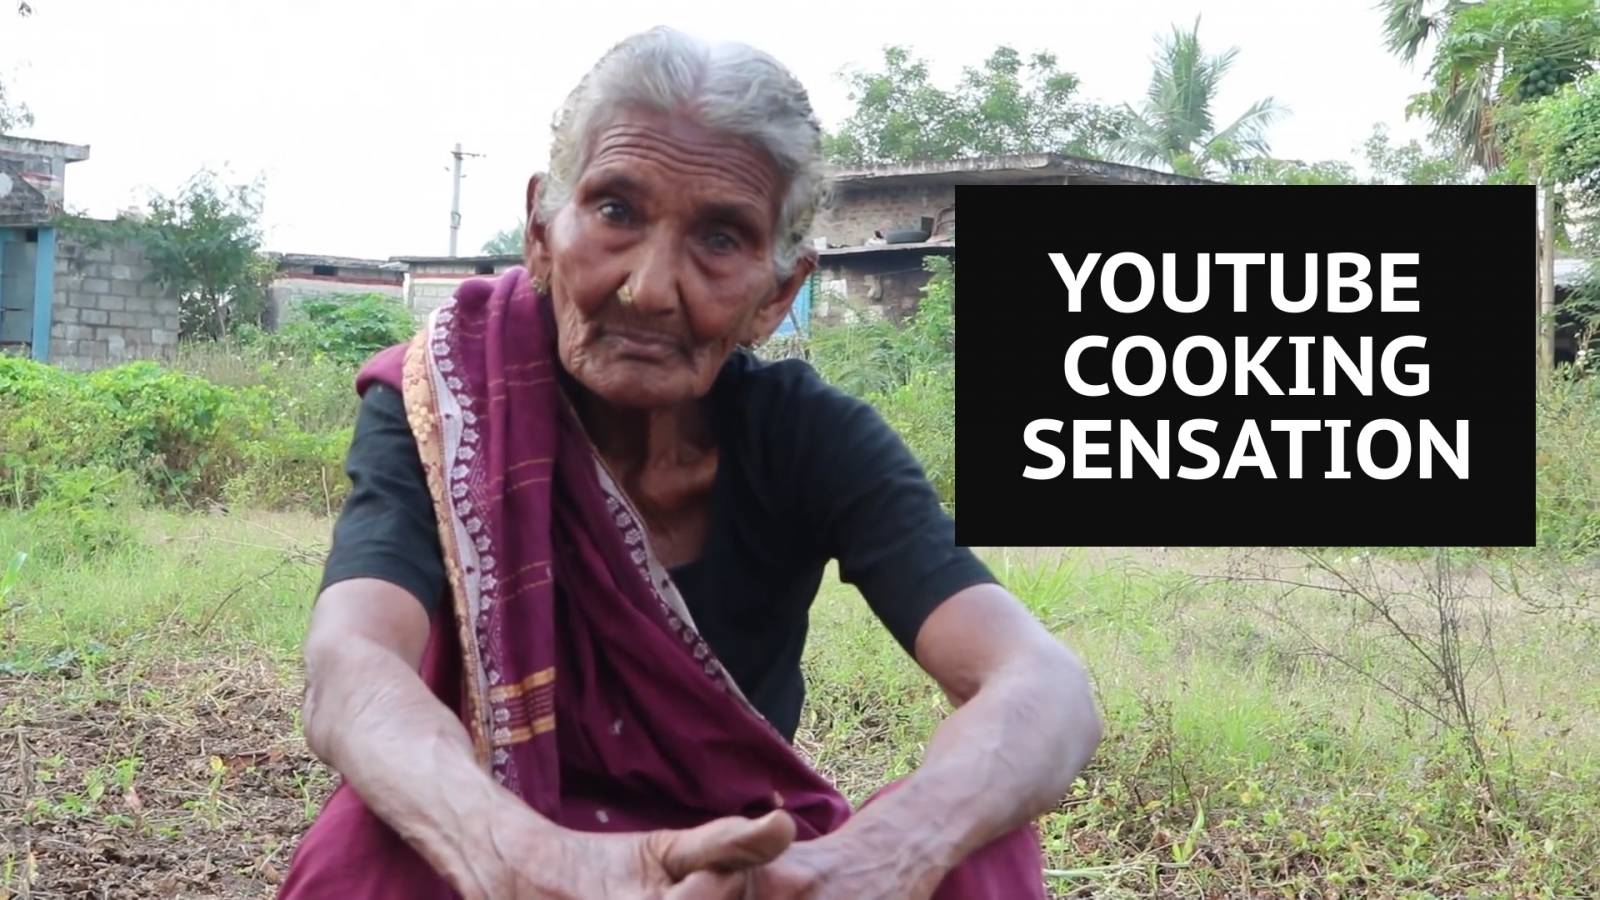 Meet Mastanamma the 106-year-old YouTube cooking sensation